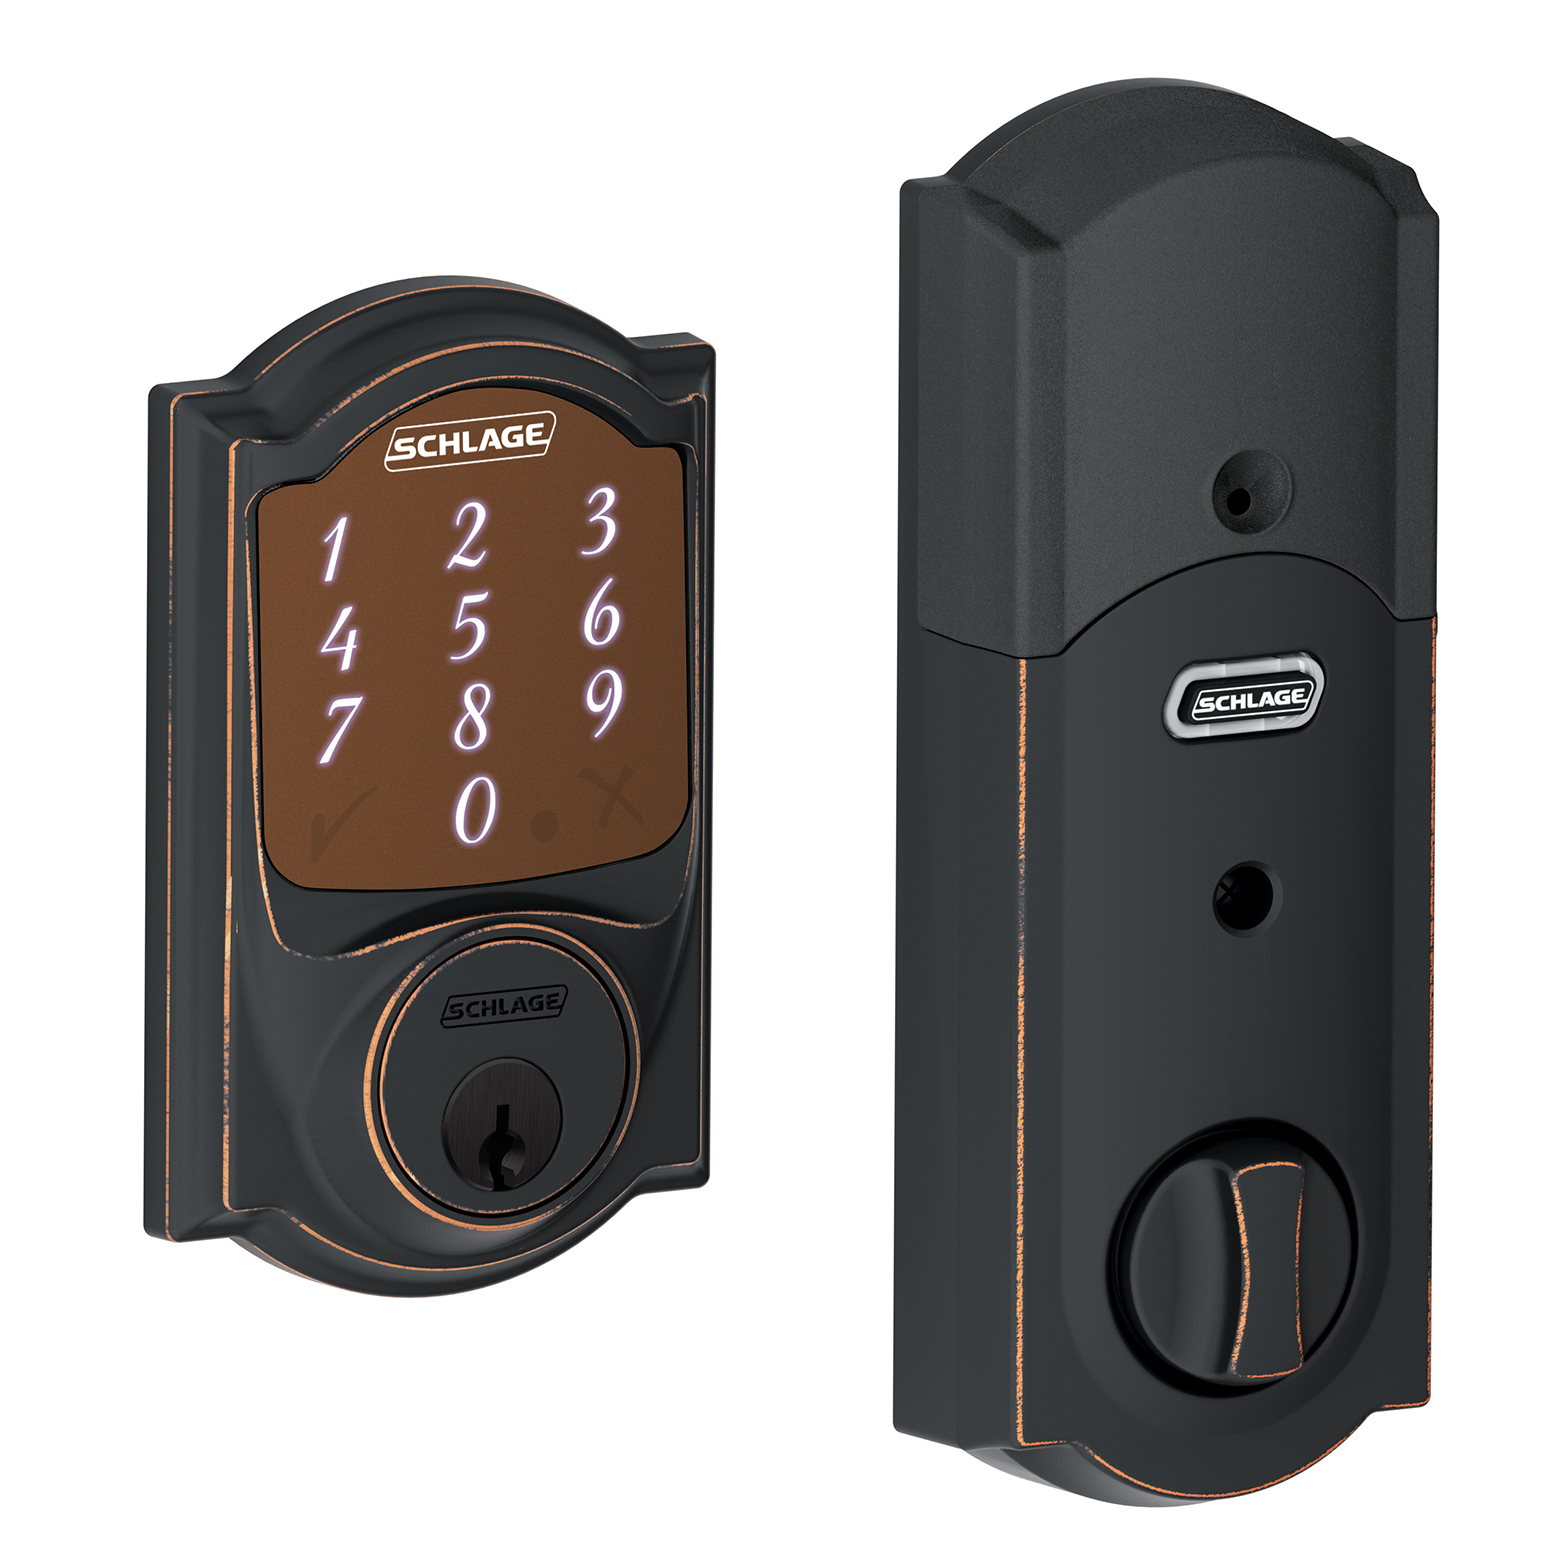 Schlage BE479AACAM716 Aged Bronze Sense™ Smart Deadbolt With Camelot Trim